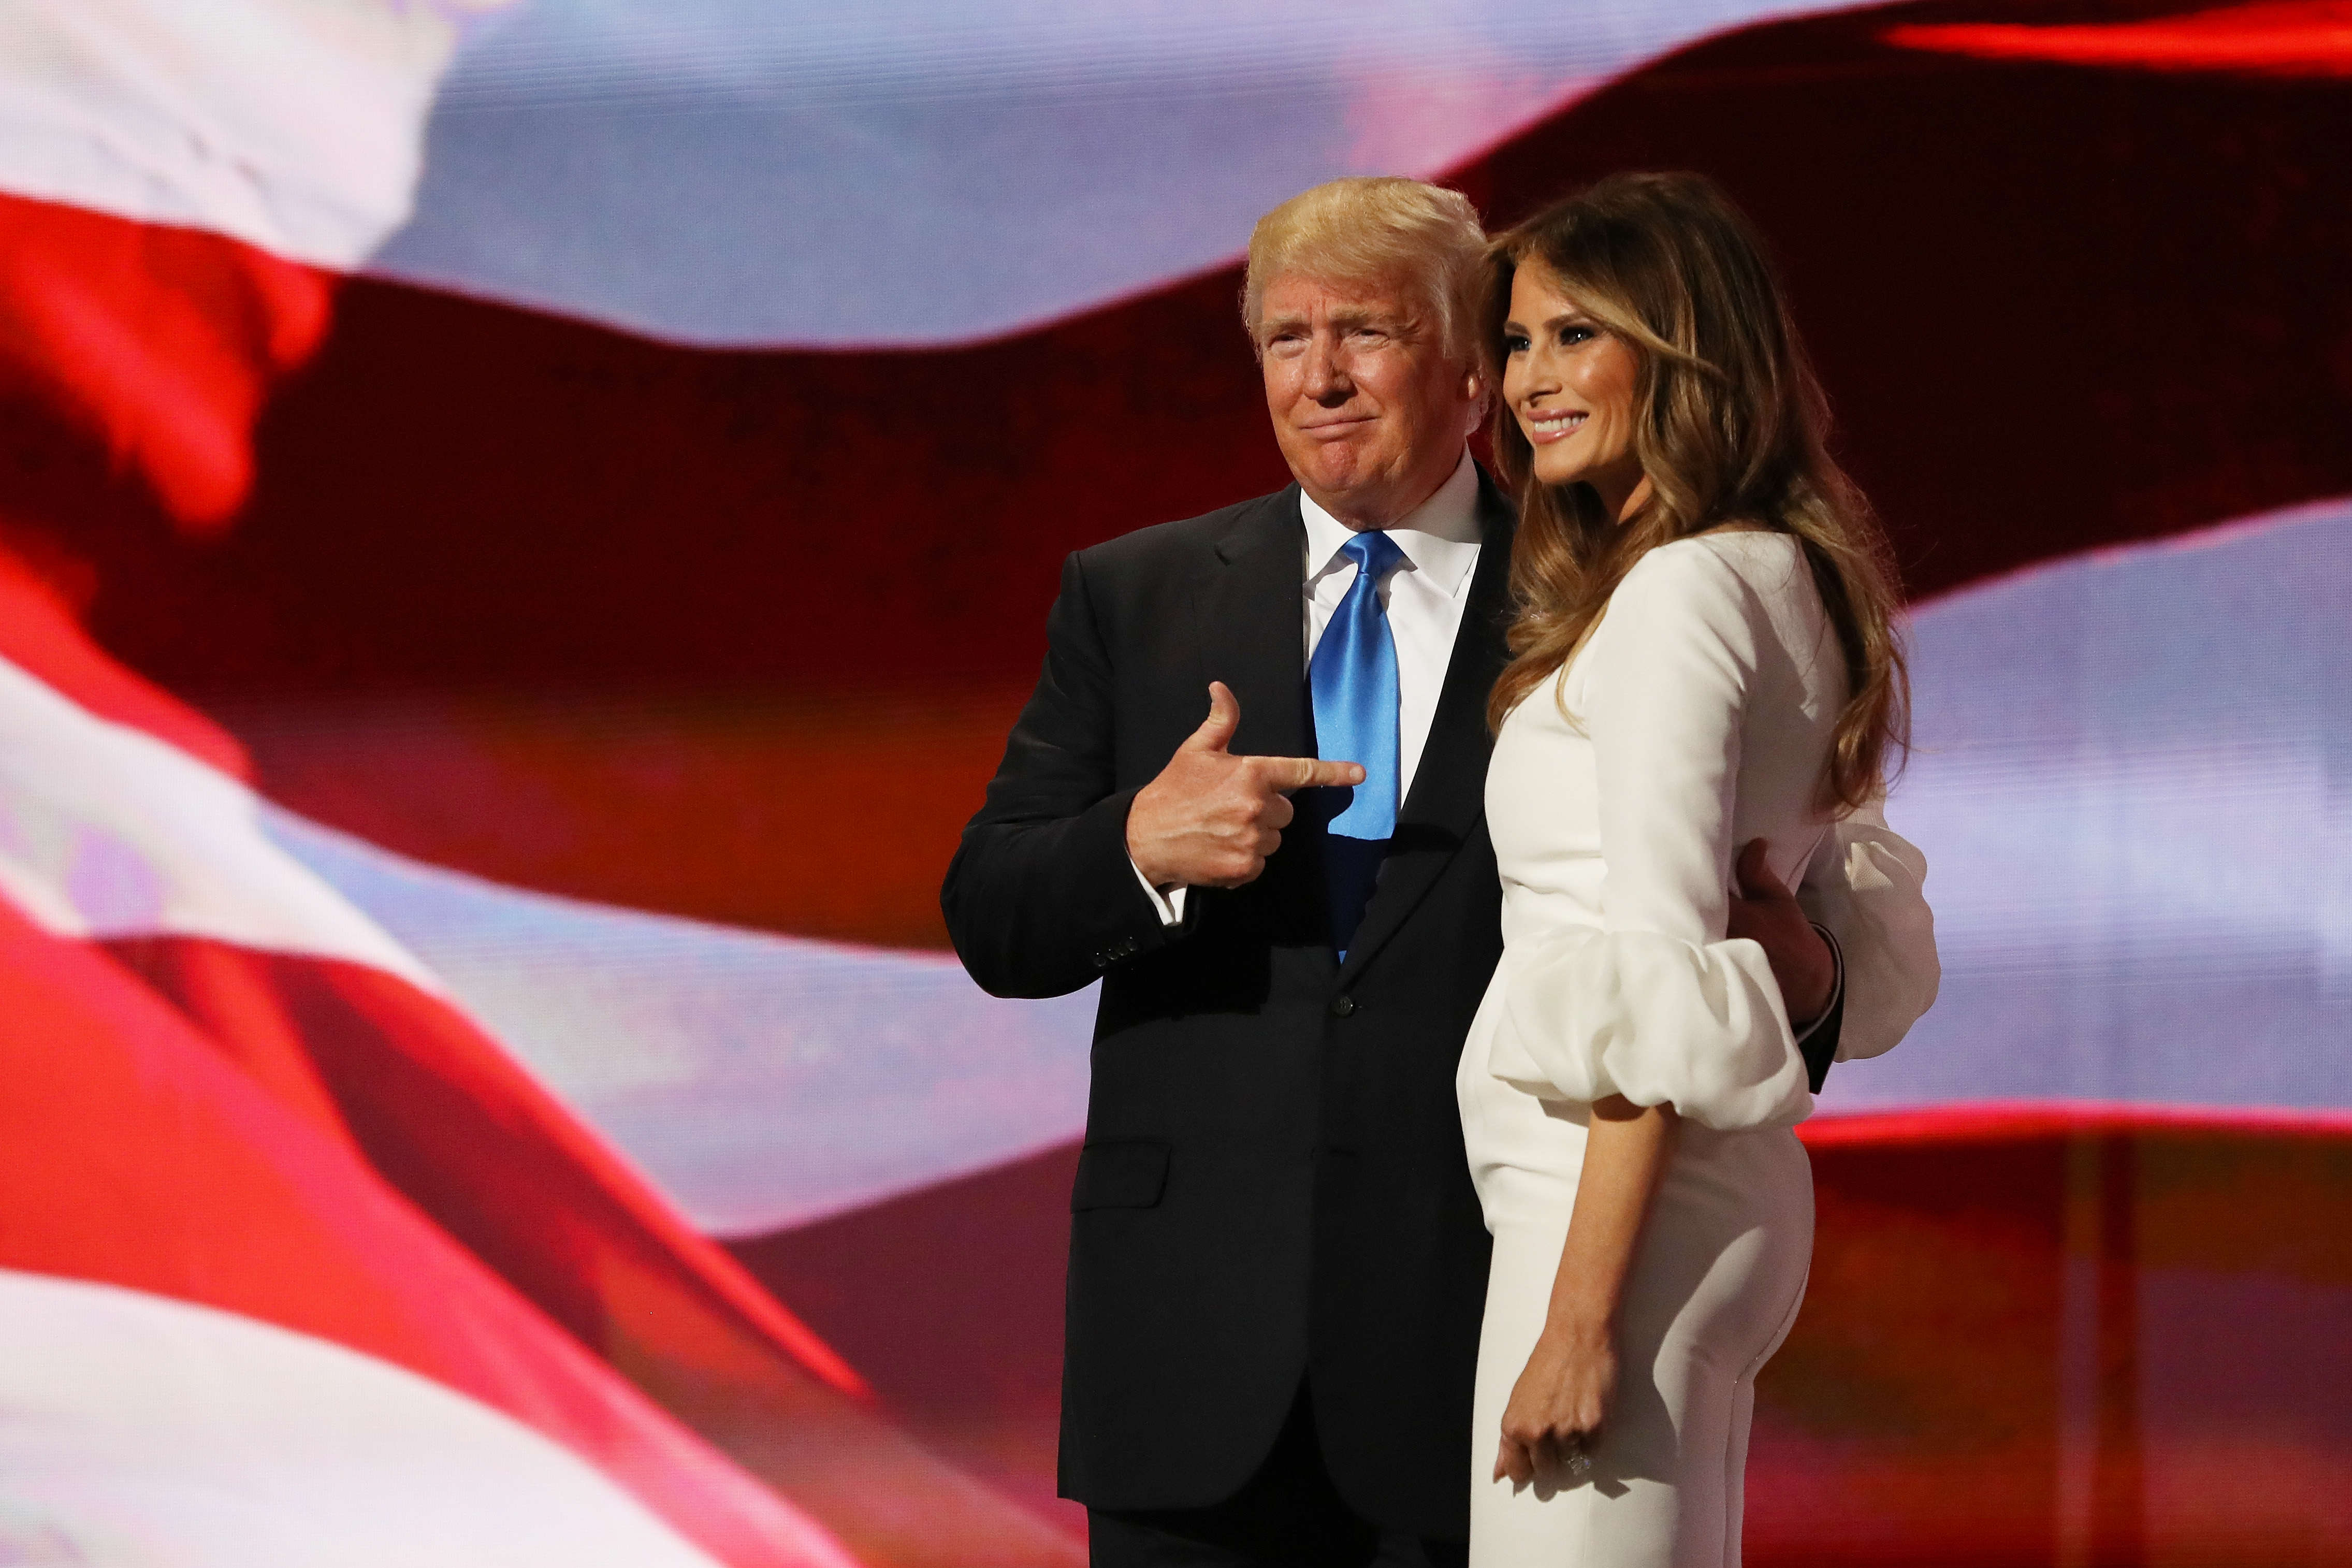 Trumps Wifes Naked Front Cover Is New Low For U.S. Politics GettyImages 577293444